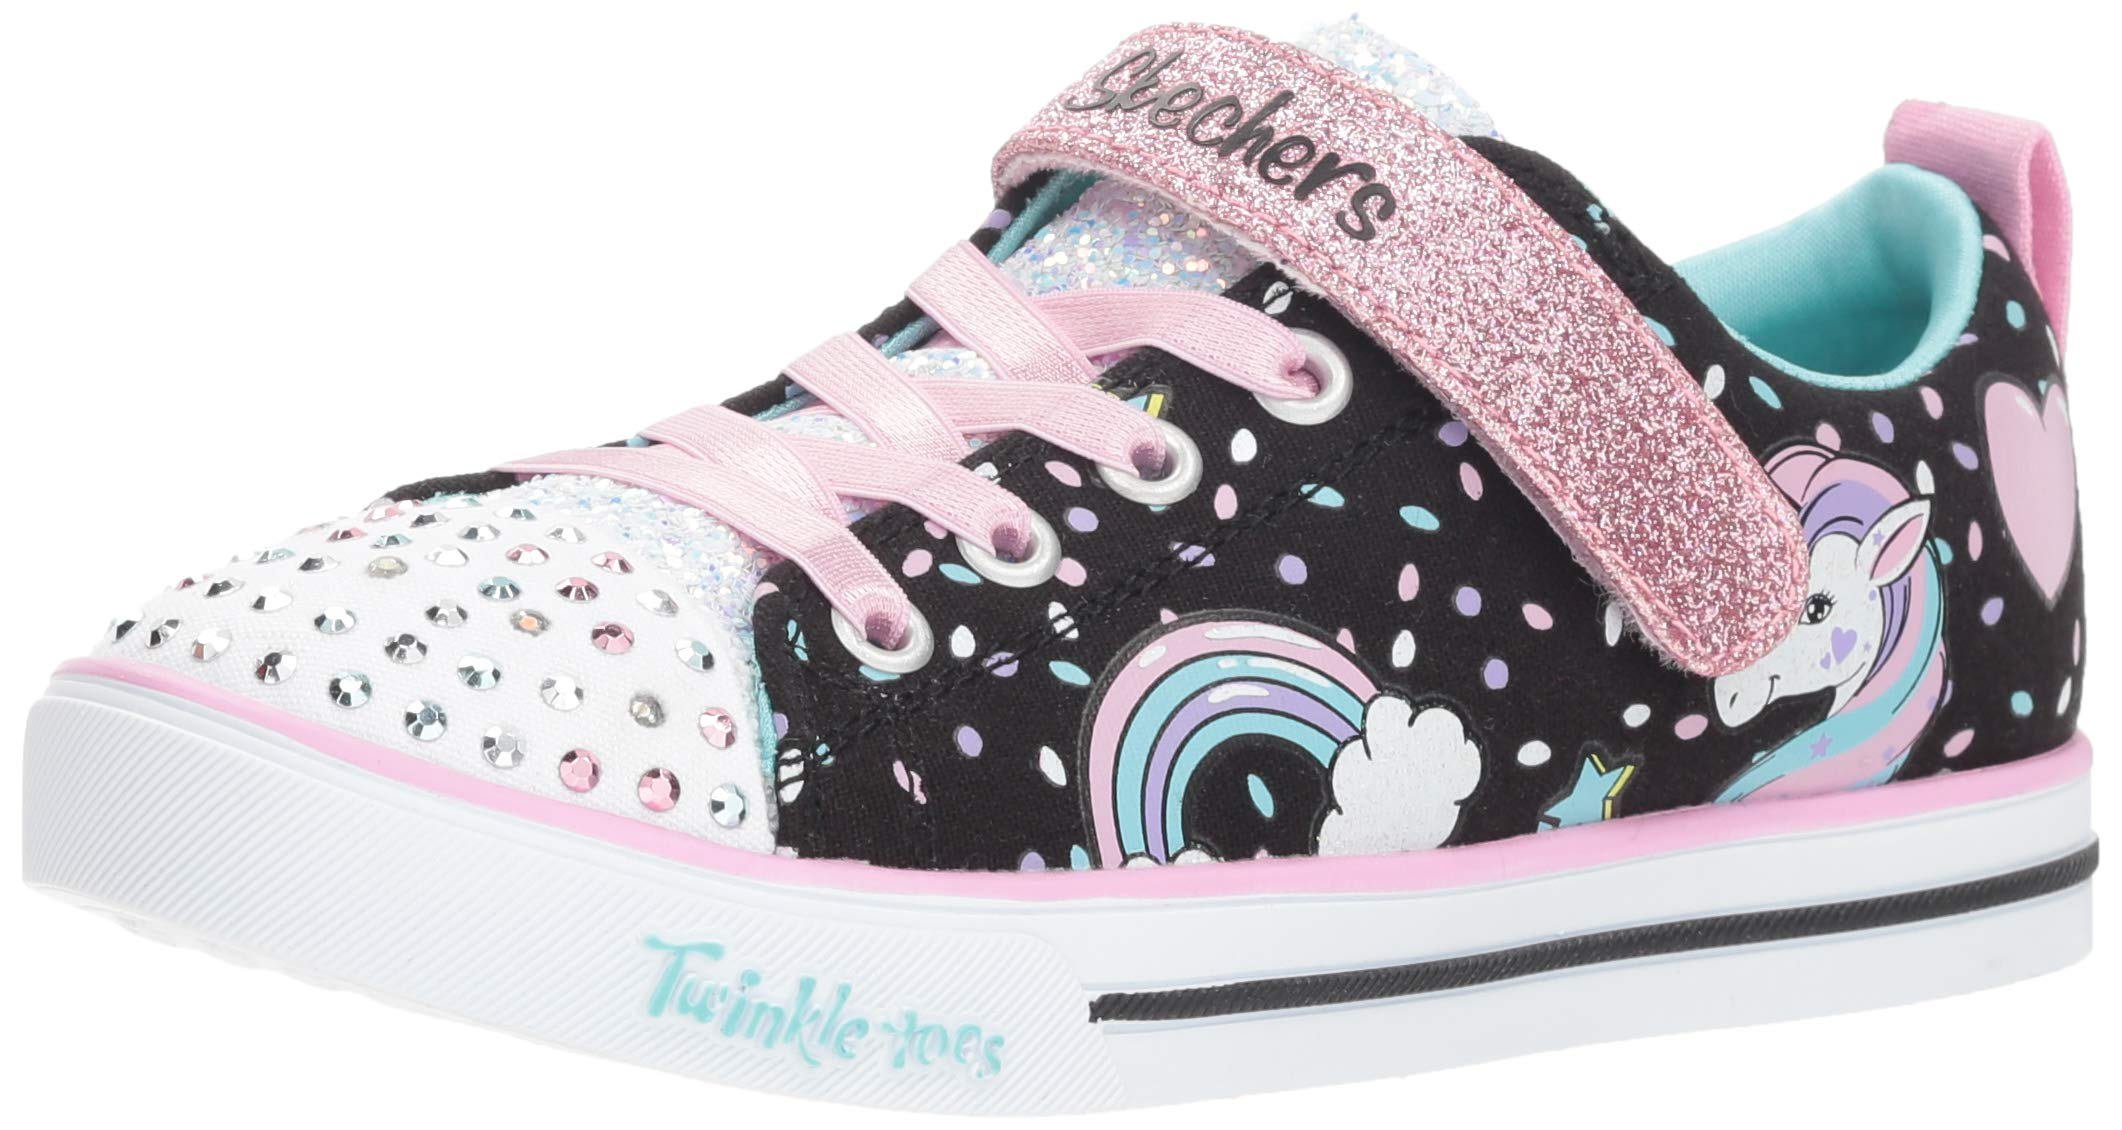 29278a784045 Galleon - Skechers Kids Girls' Sparkle LITE-Unicorn Craze Sneaker  Black/Multi 13 Medium US Little Kid